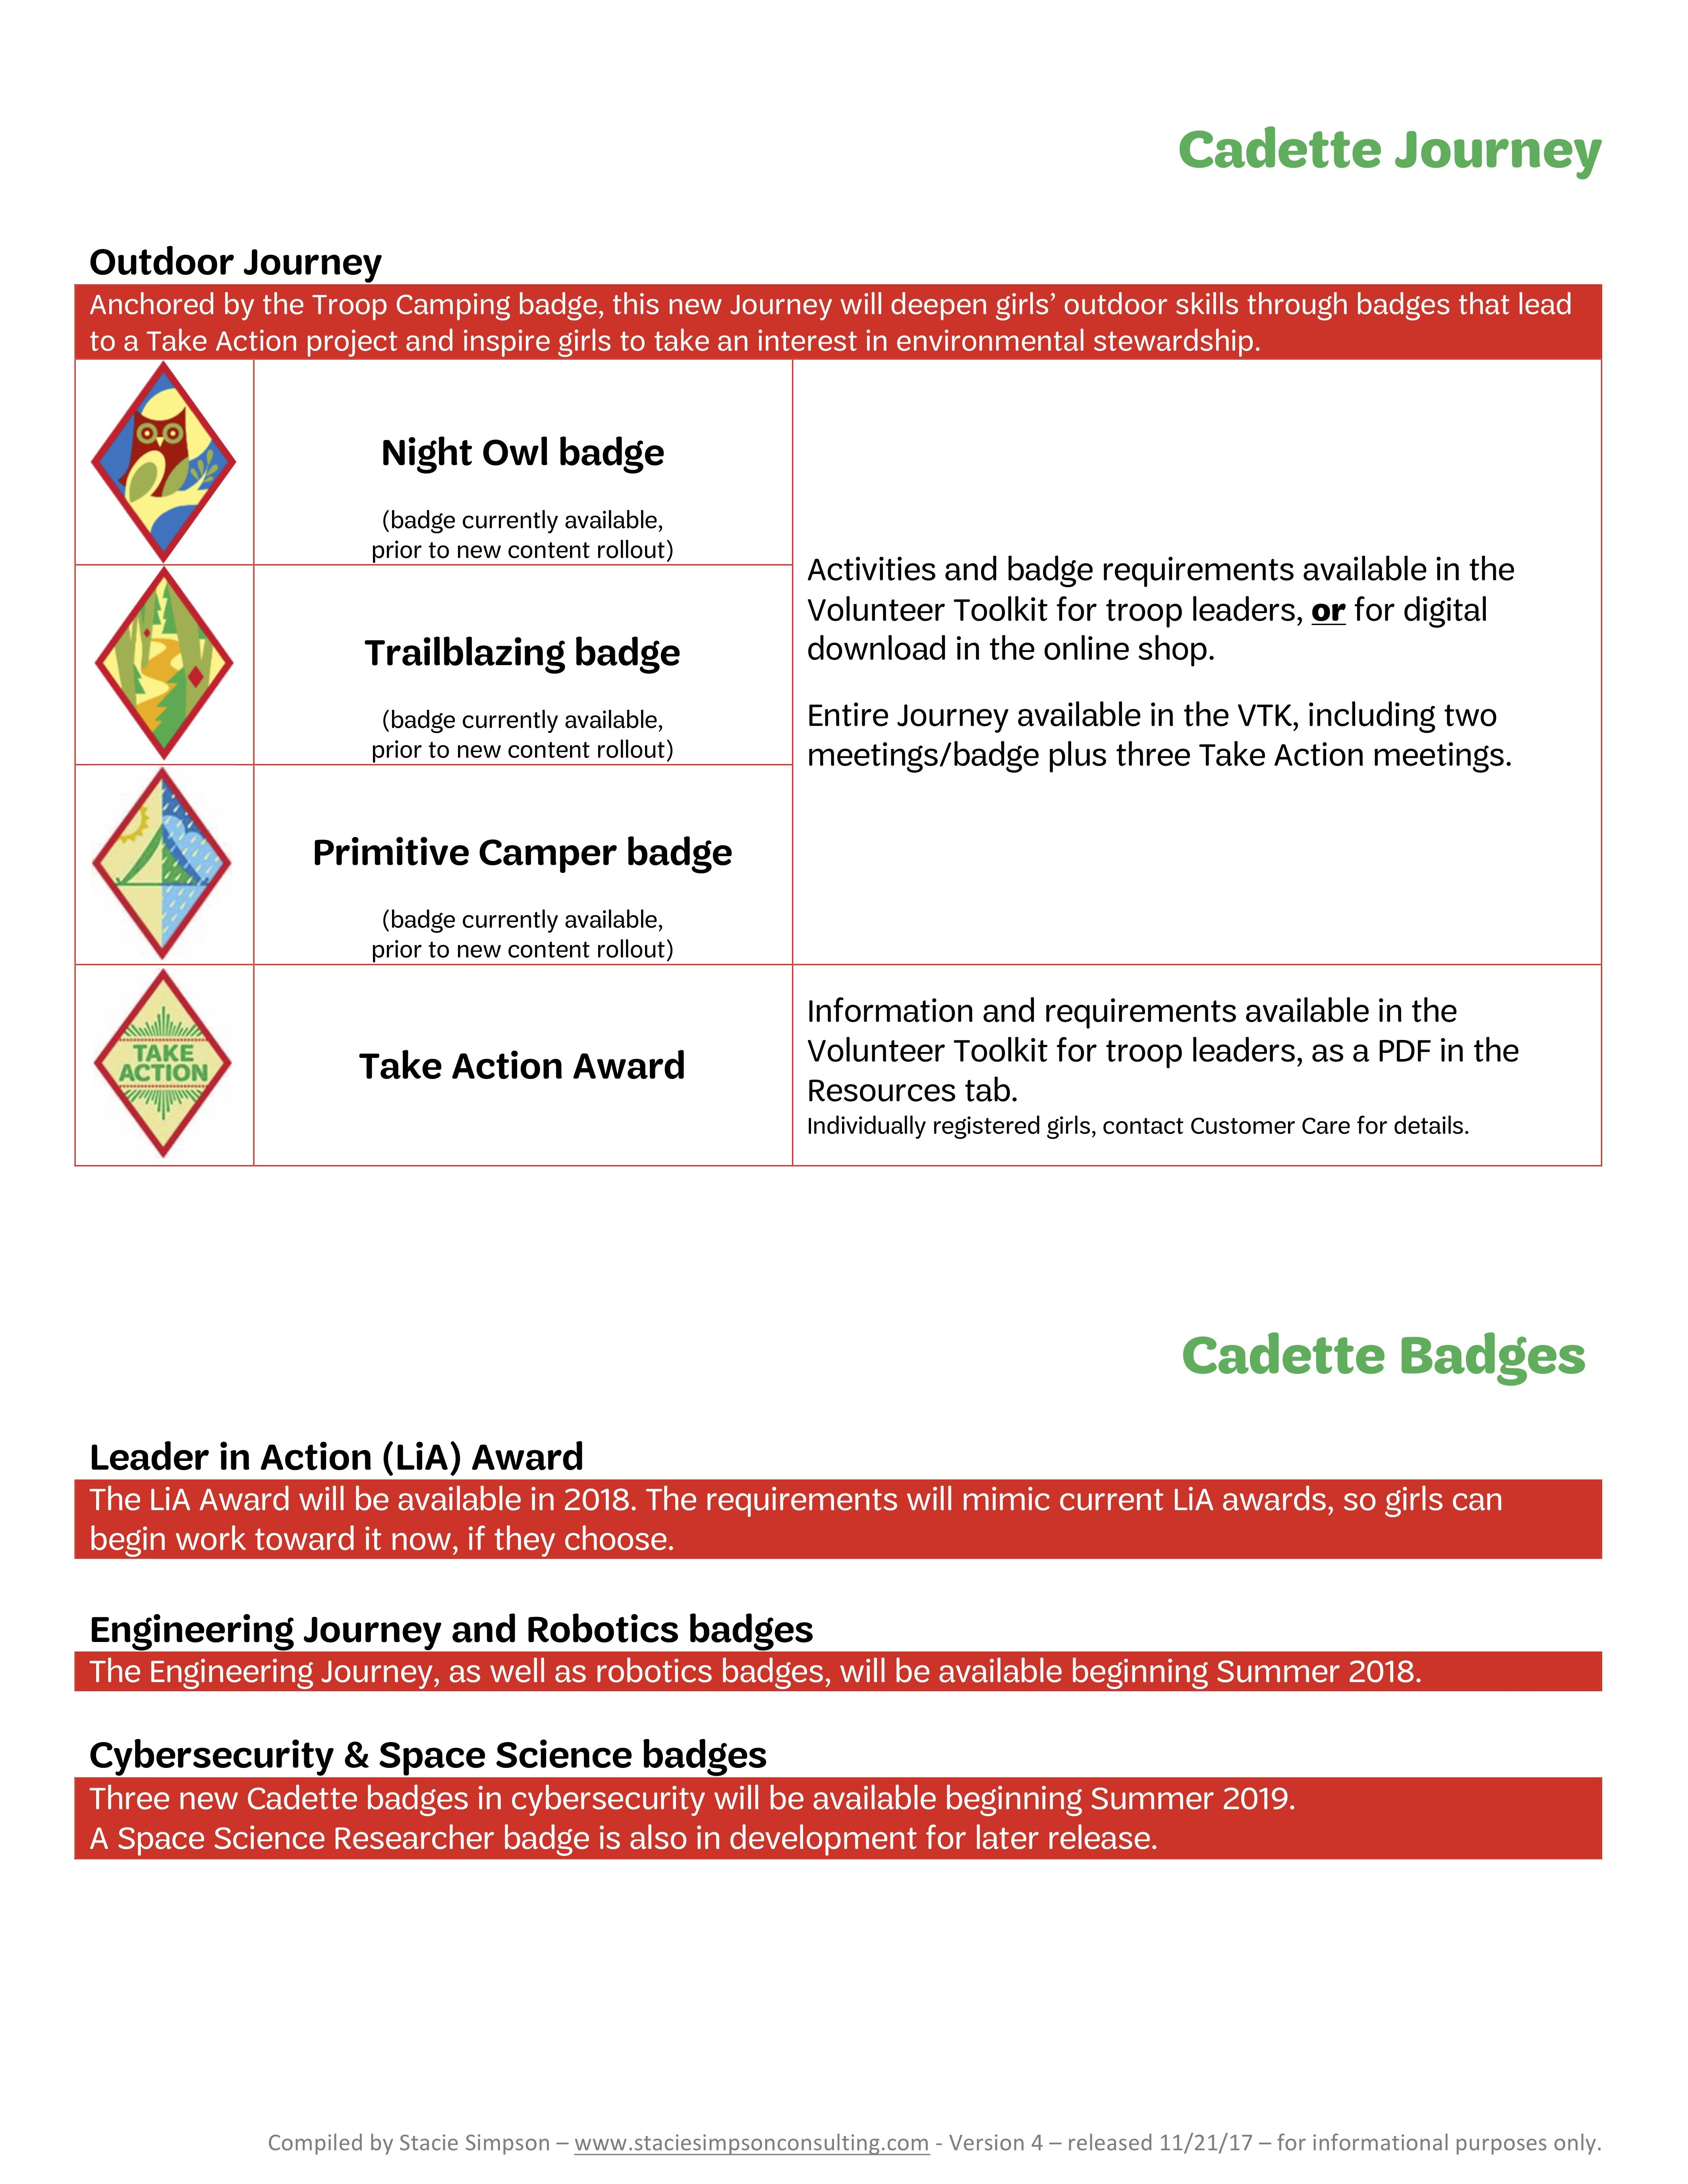 New Girl Scout Cadette Outdoor Journey [This includes a correction from a  previous pin.]